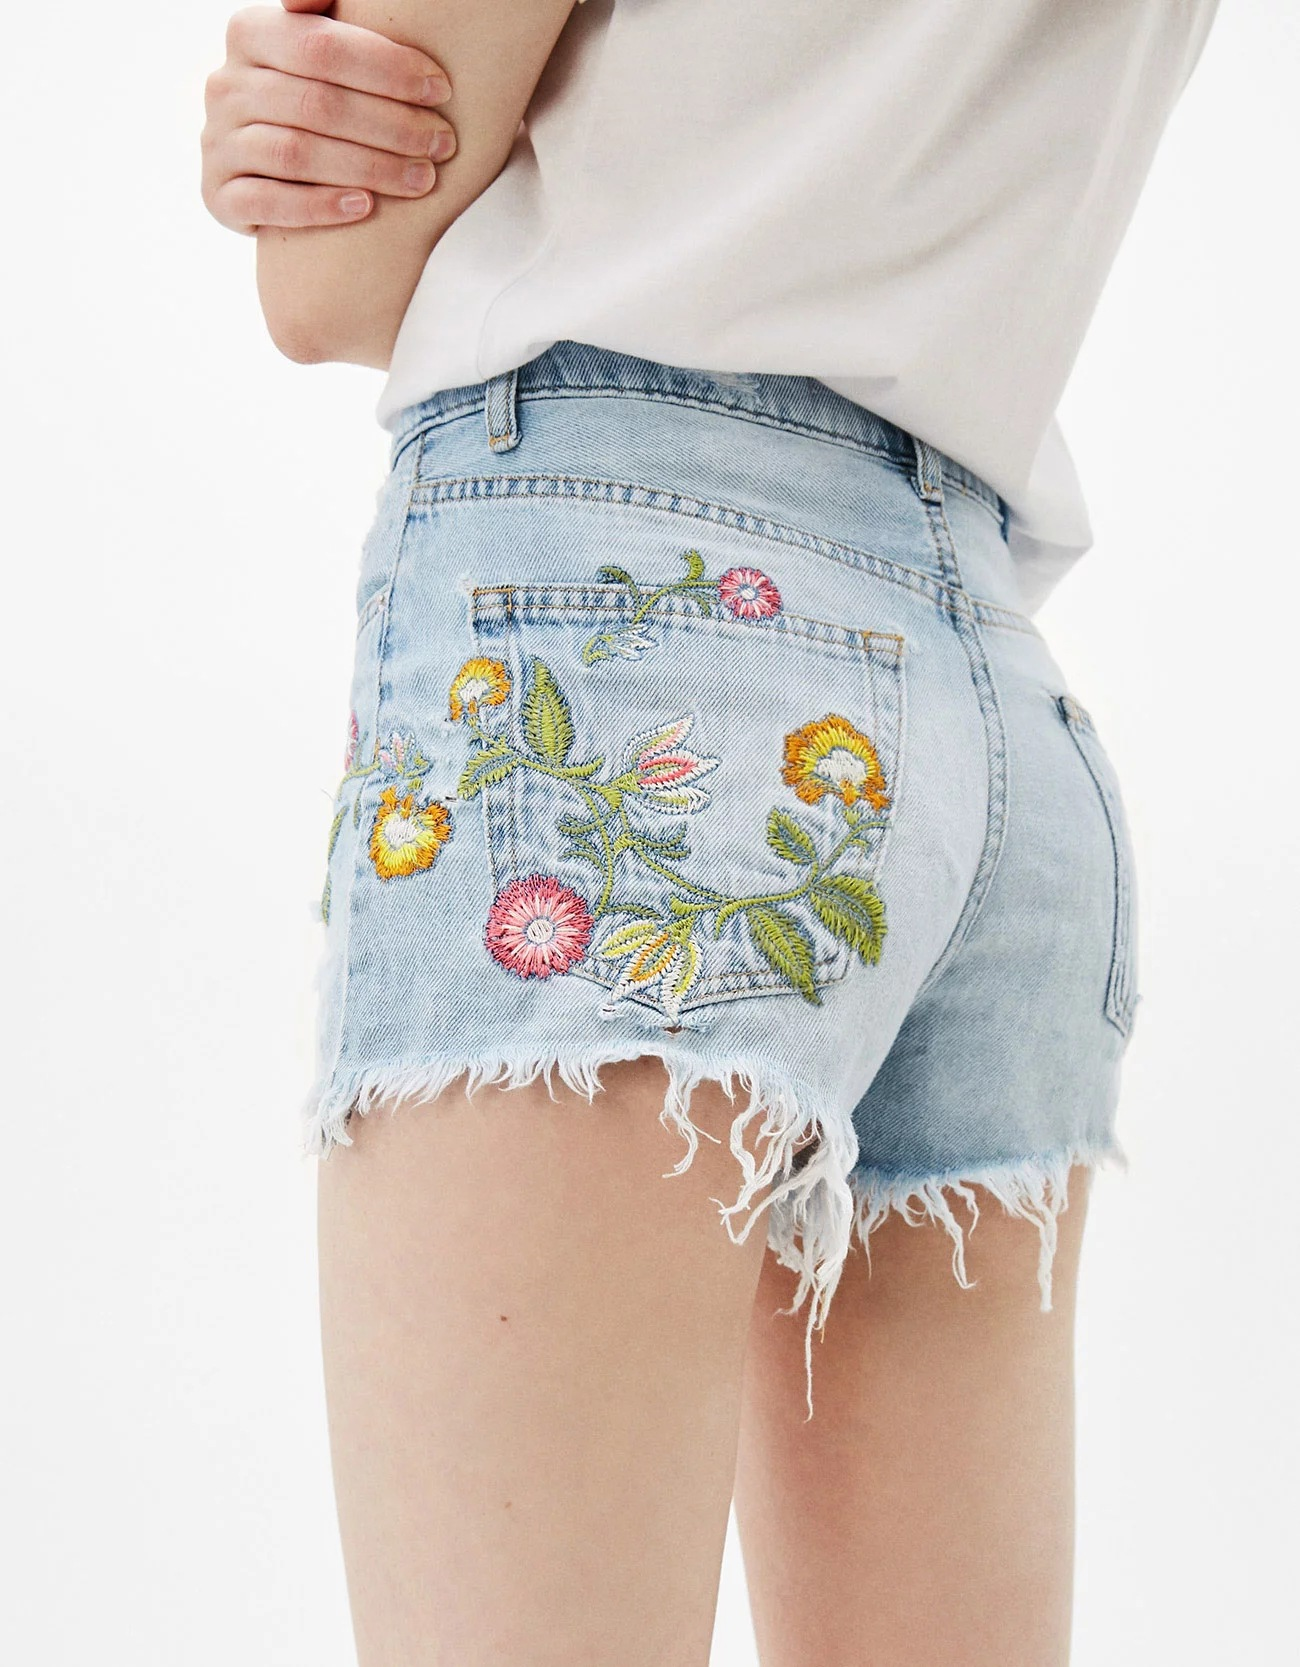 A0605F5 summer new products in Europe and the flower embroidery wash jeans shorts 9077 0605